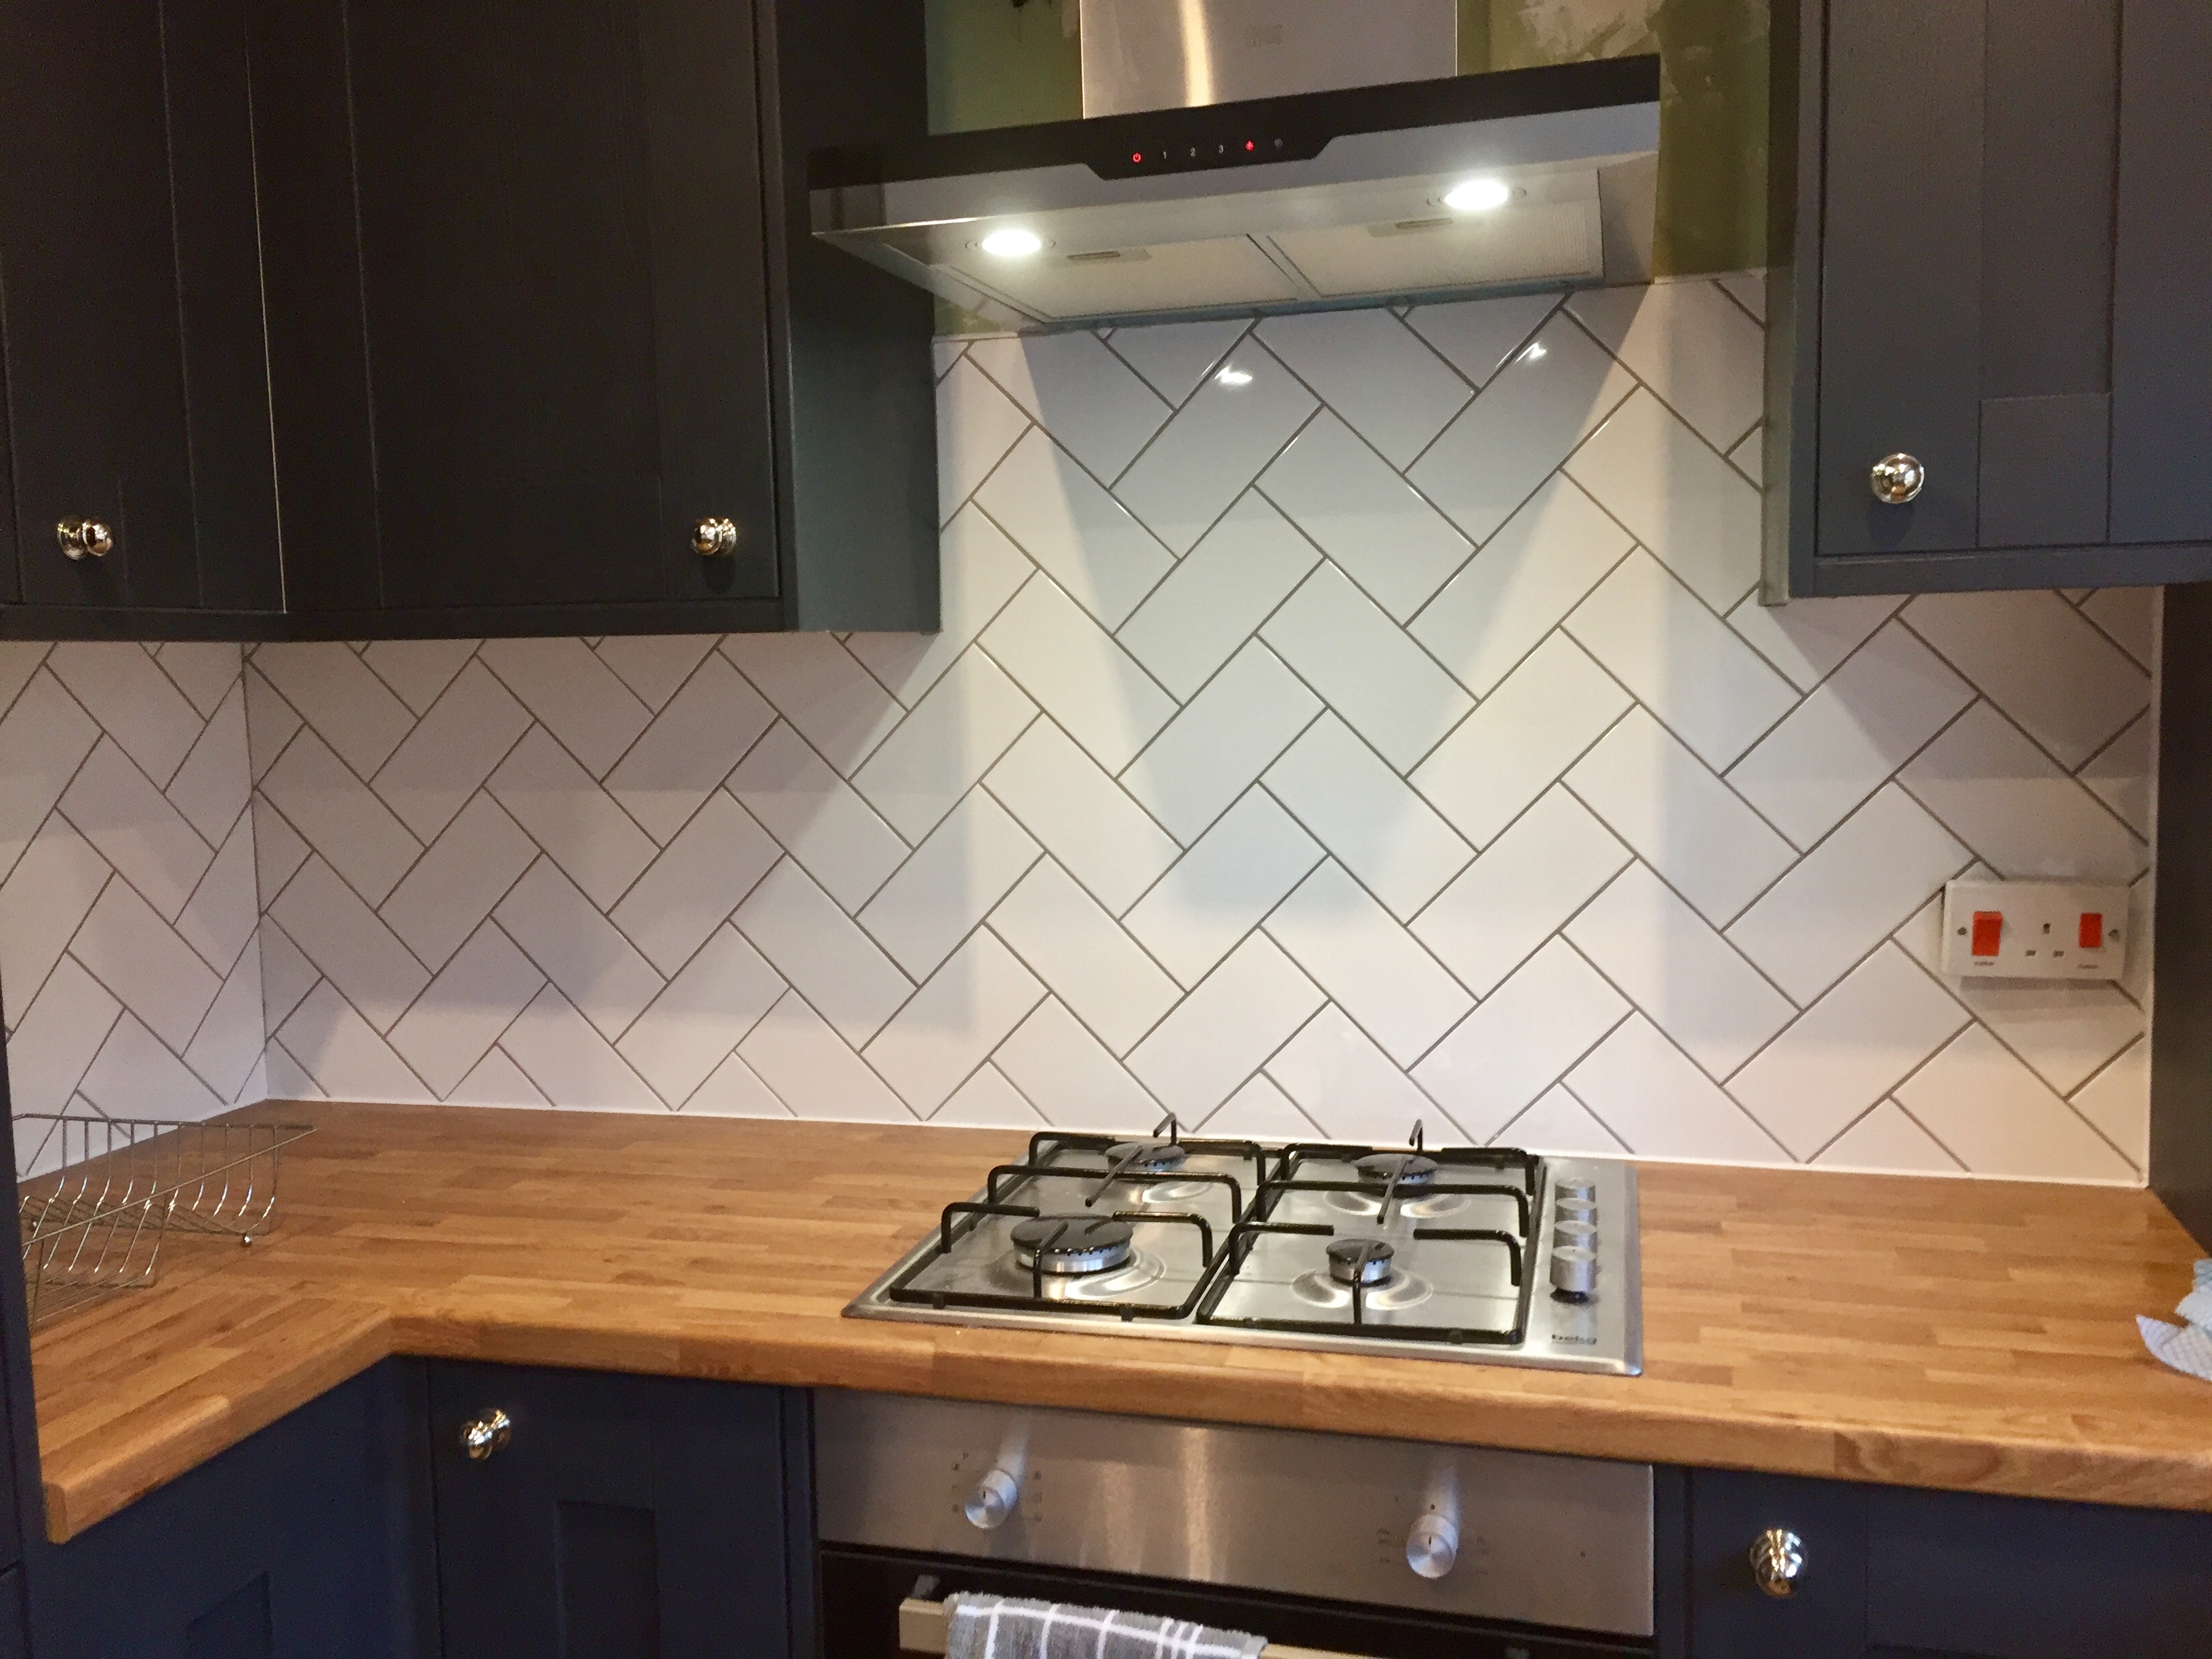 Herringbone splash back.